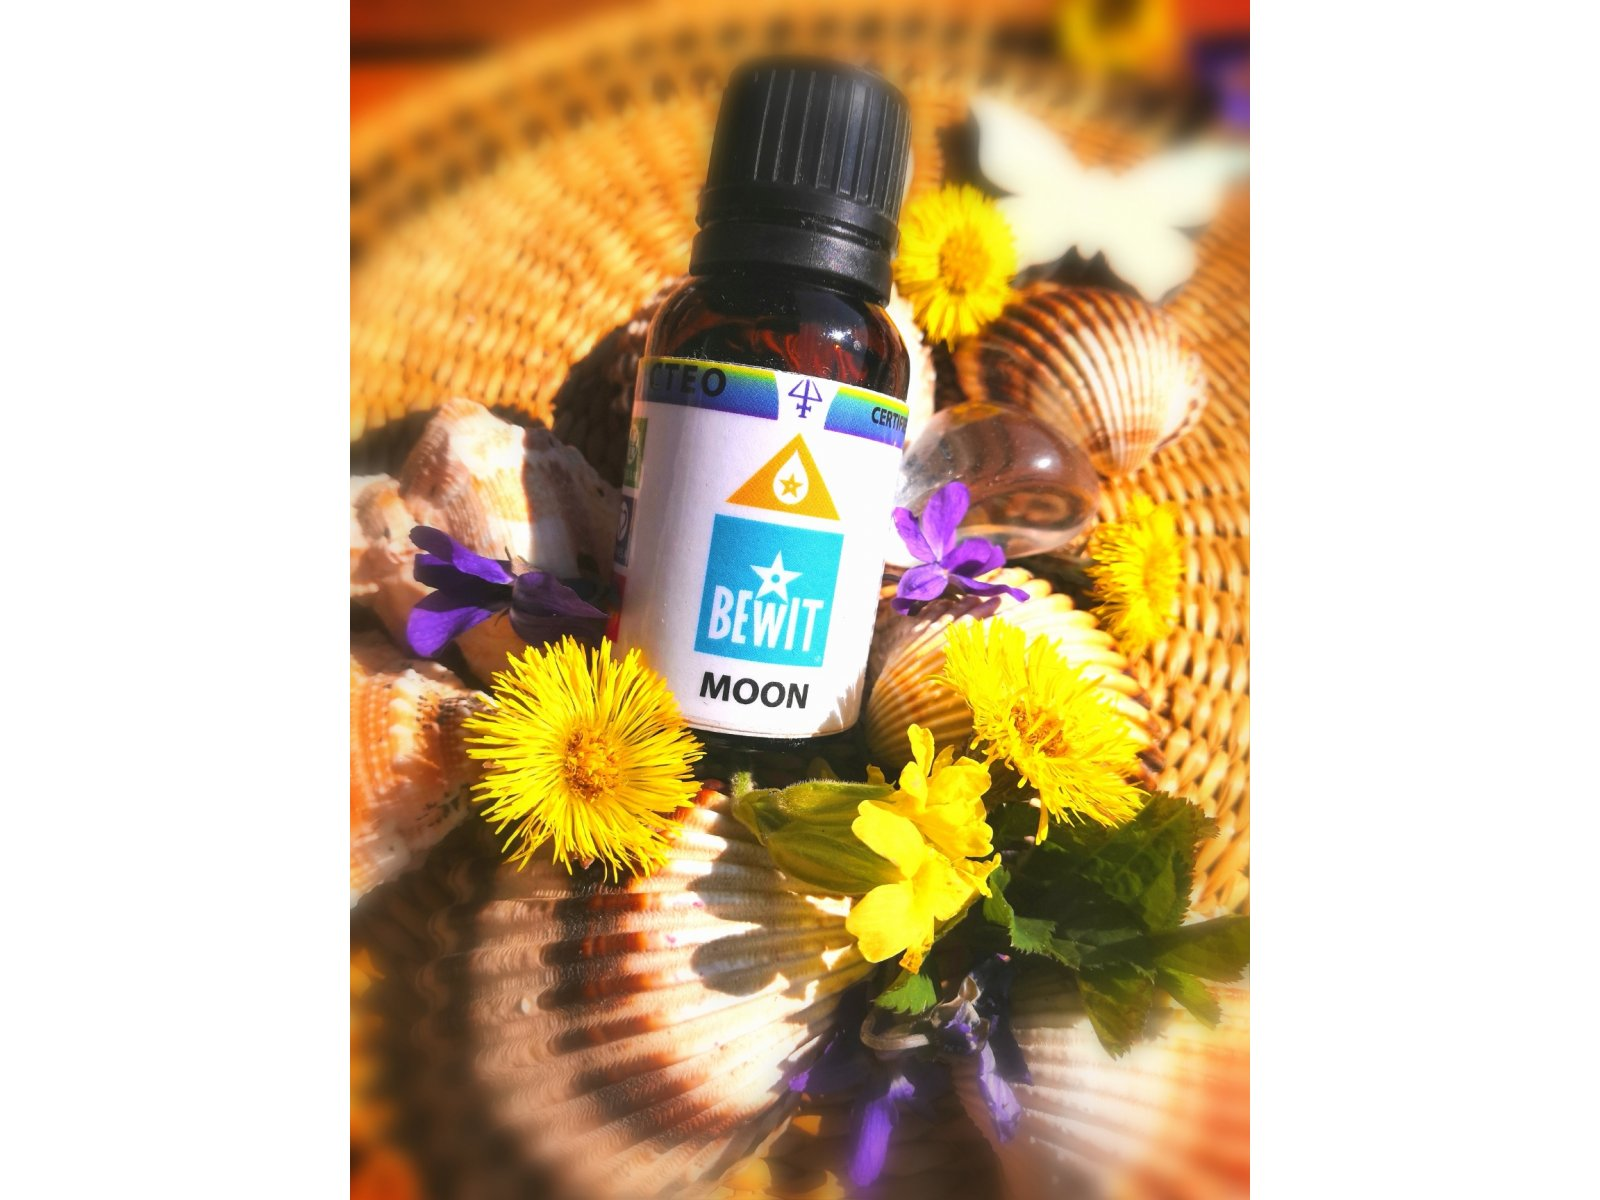 BEWIT MOON - Blend of the essential oils - 3